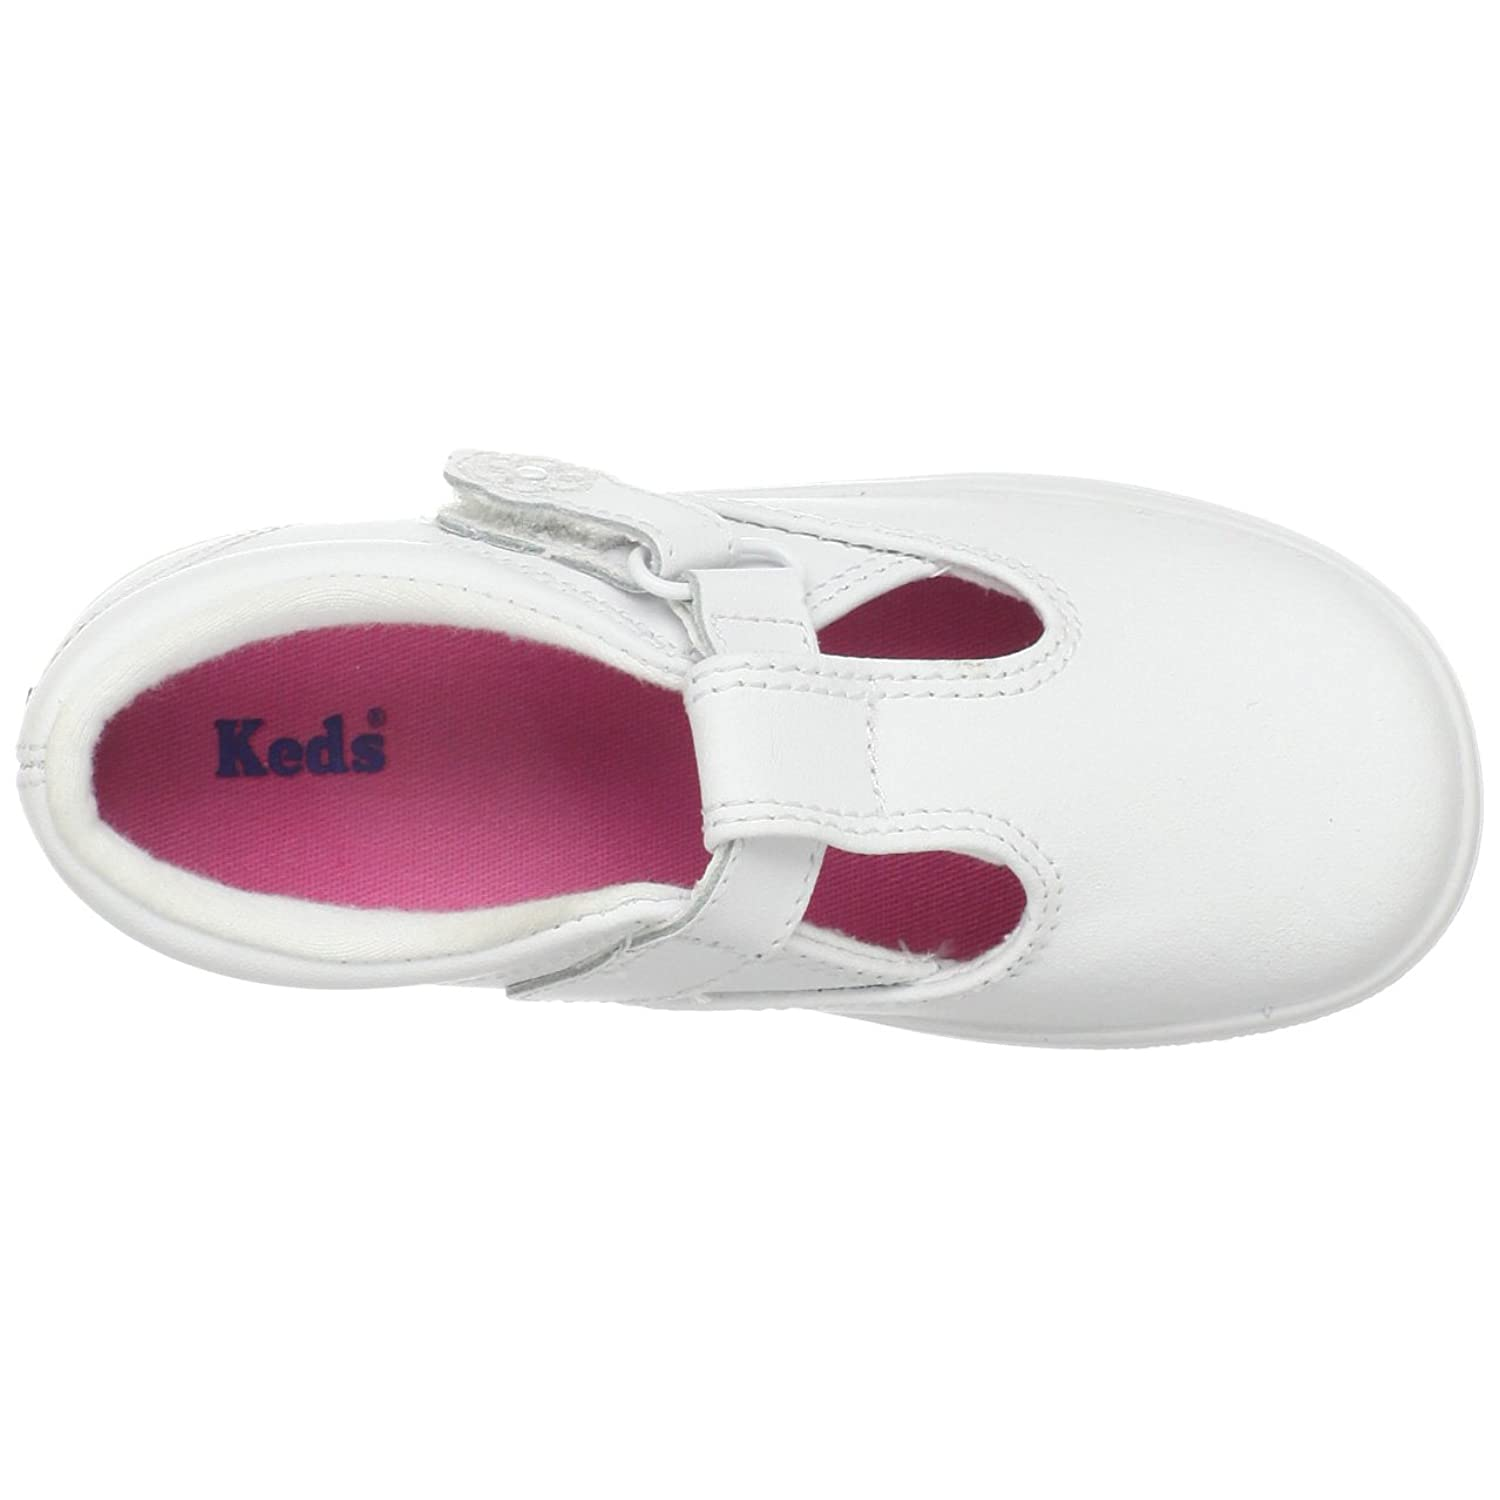 Amazon Keds Daphne T Strap Sneaker Toddler Little Kid Shoes